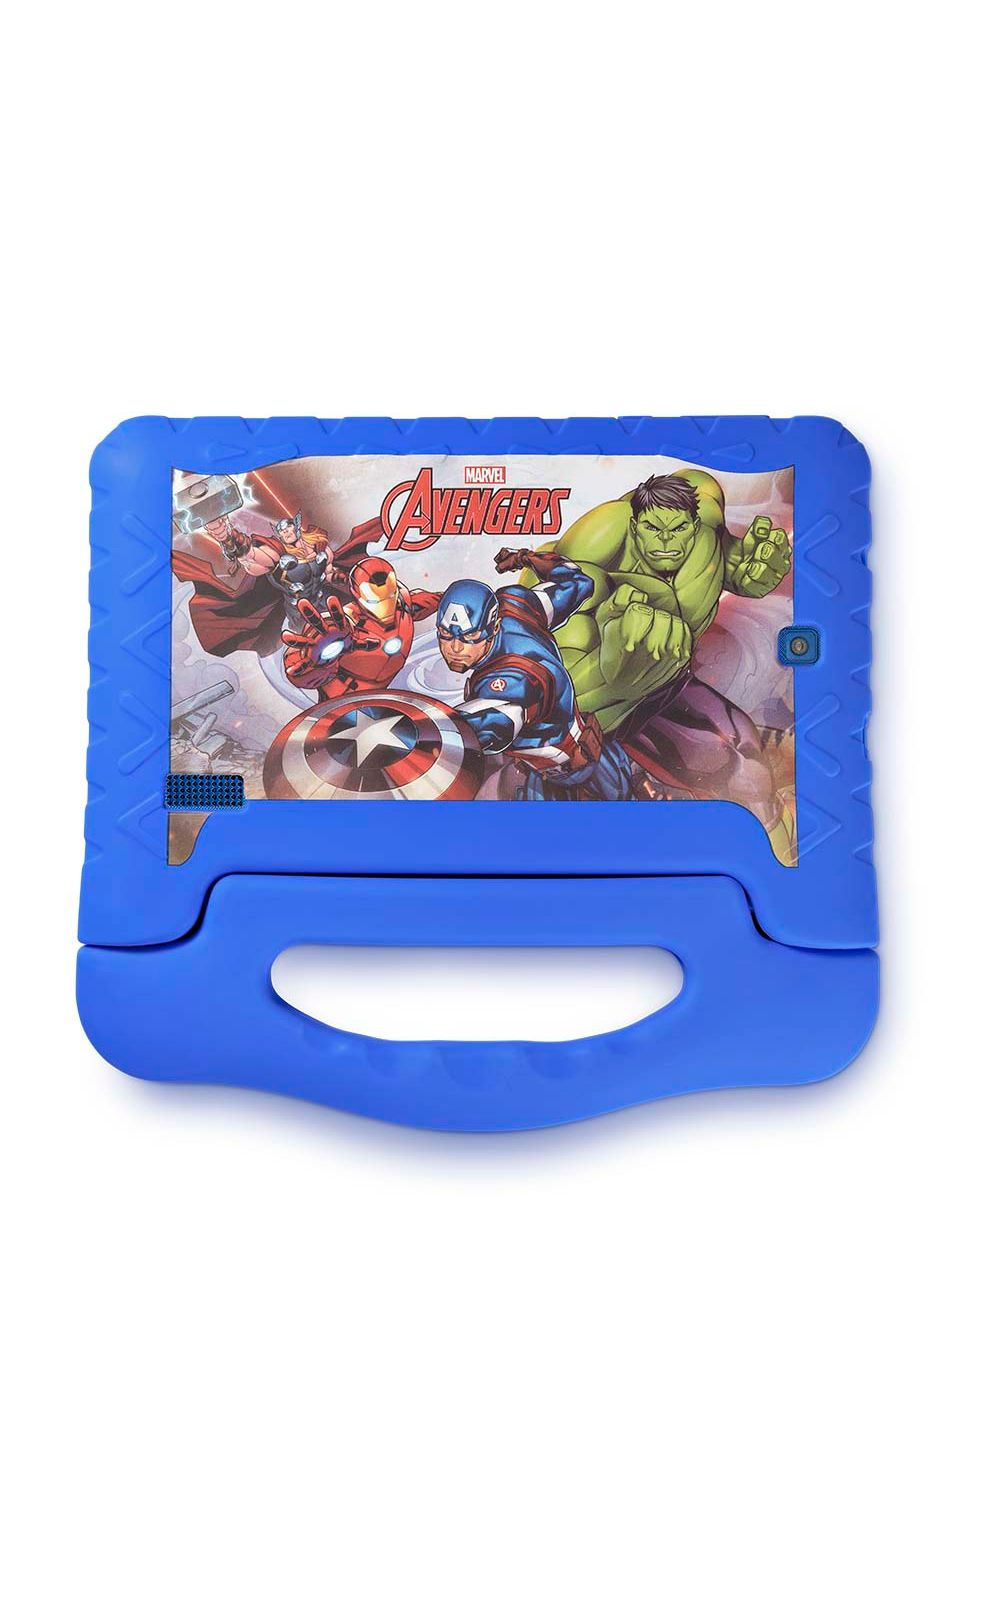 Foto 2 - Tablet Disney Vingadores Plus Wifi 8GB Android 7 Dual Câmera Azul Multilaser - NB280